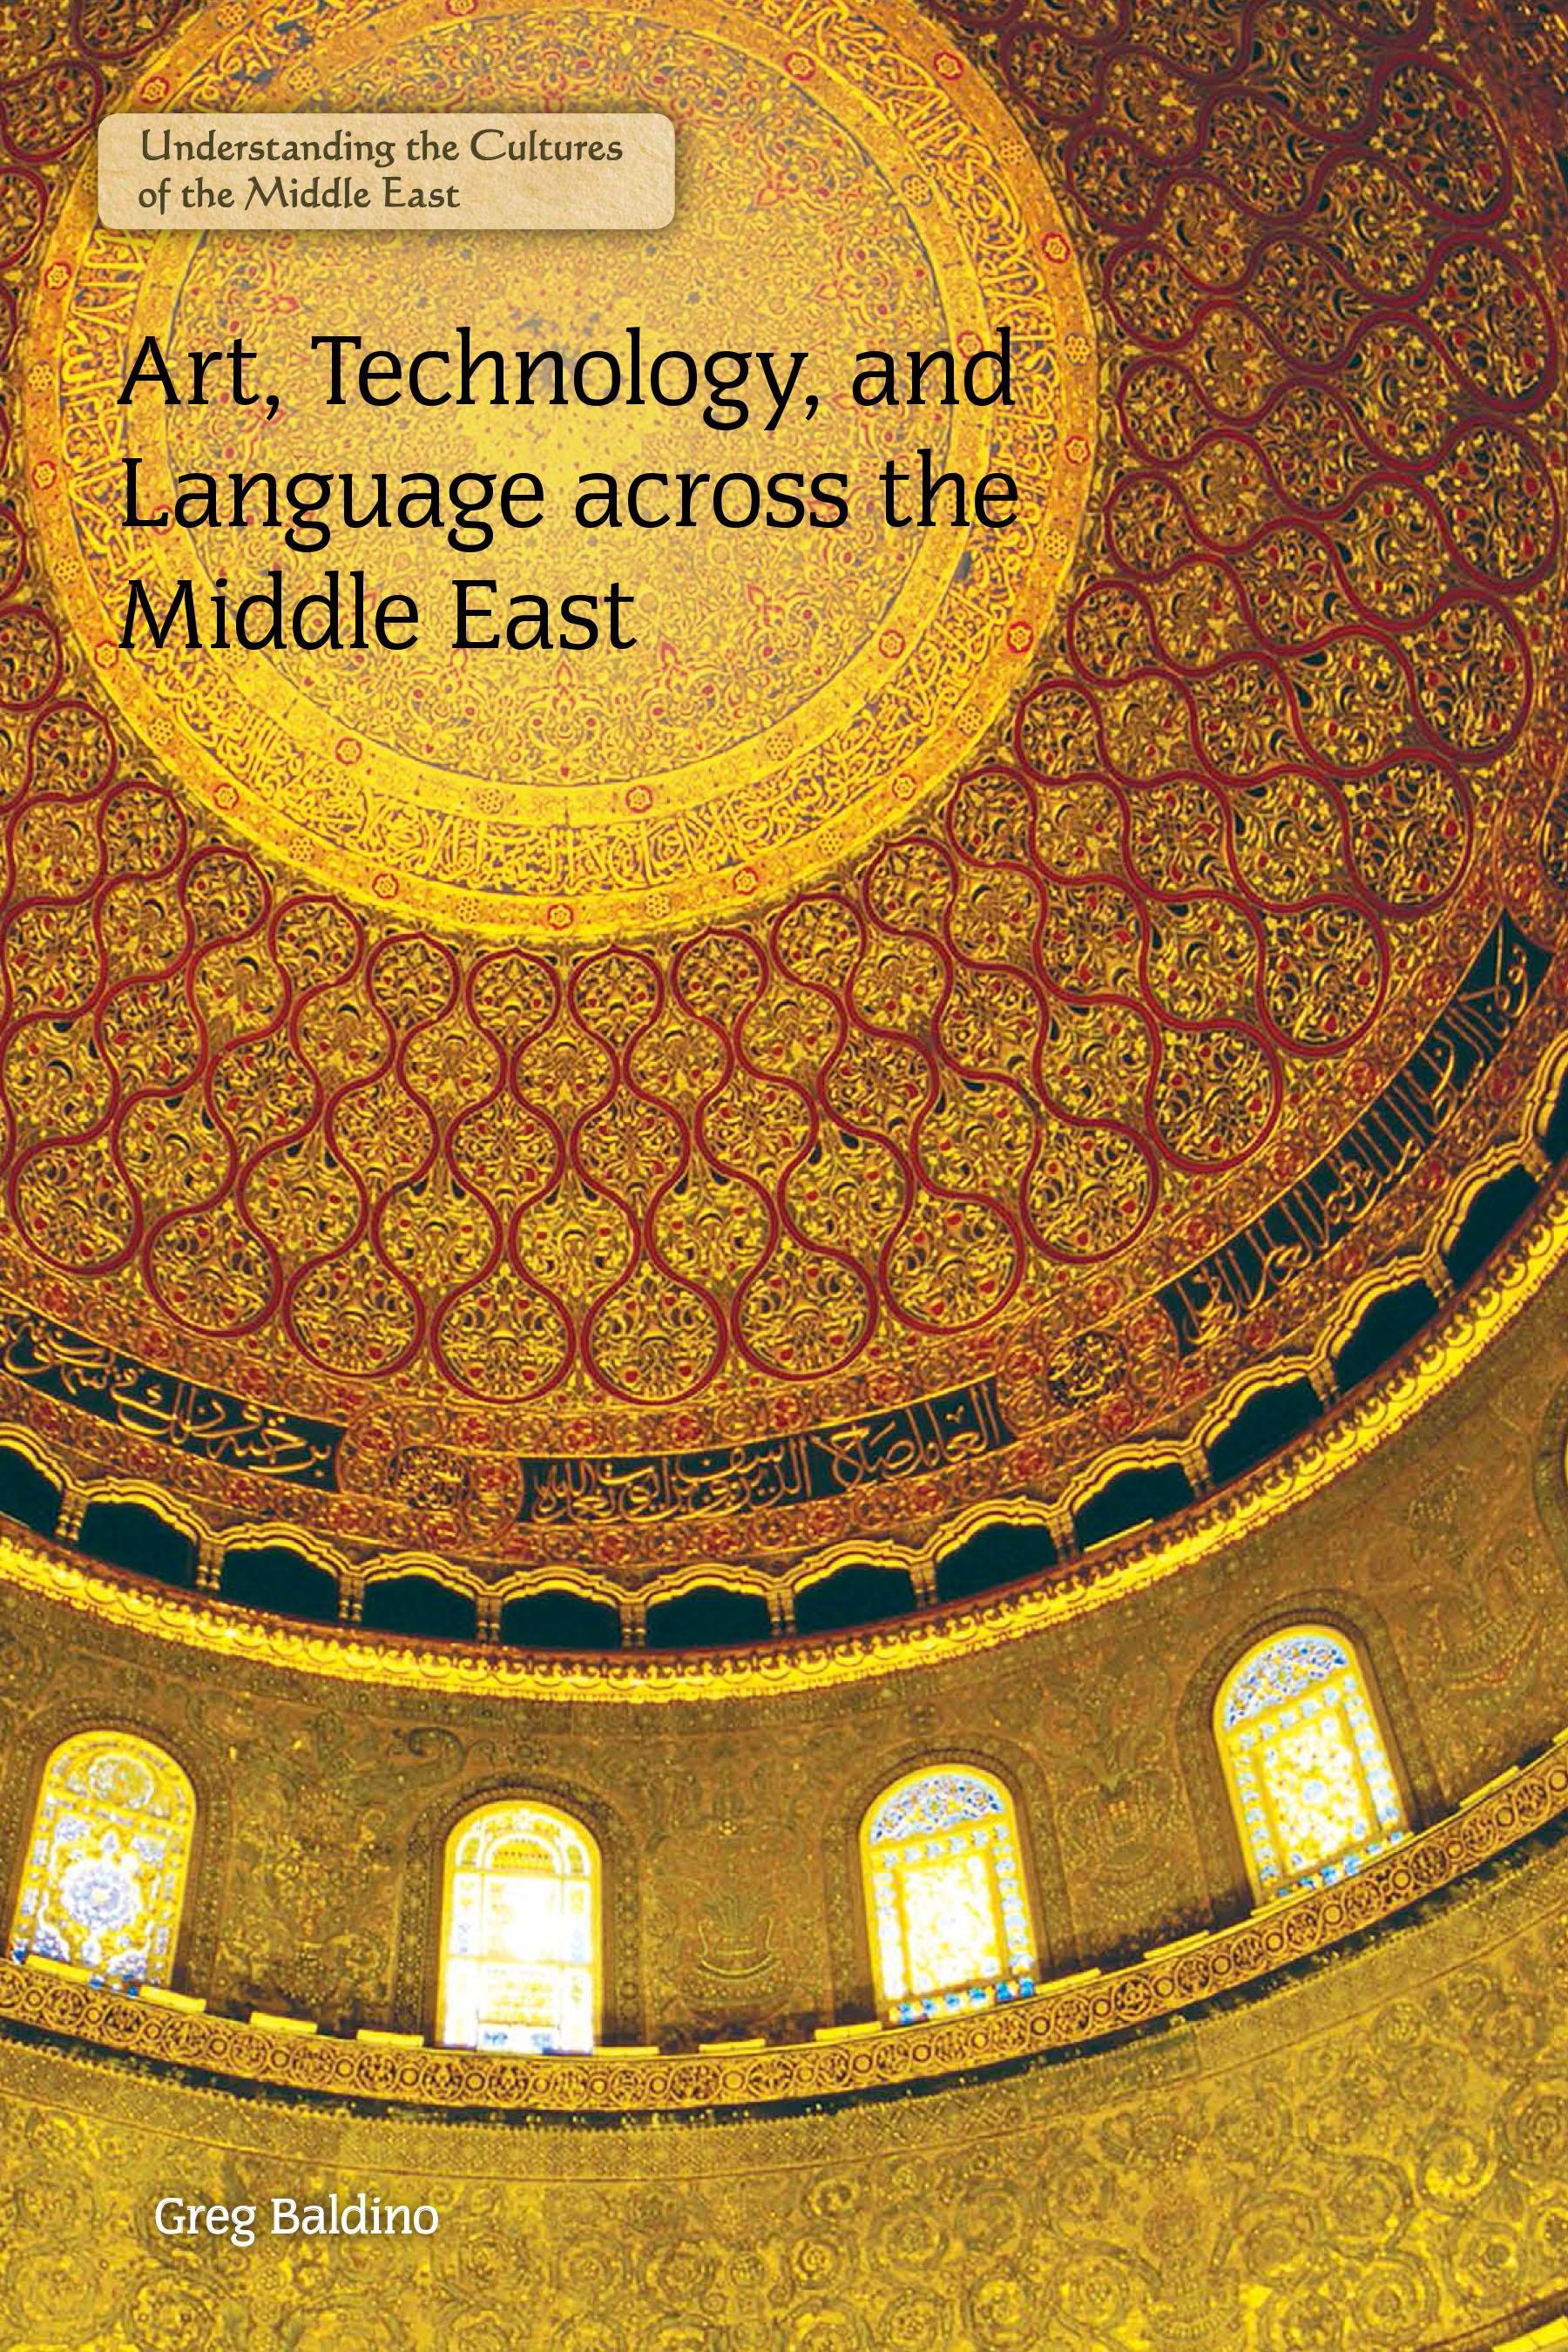 Art, Technology, and Language across the Middle East